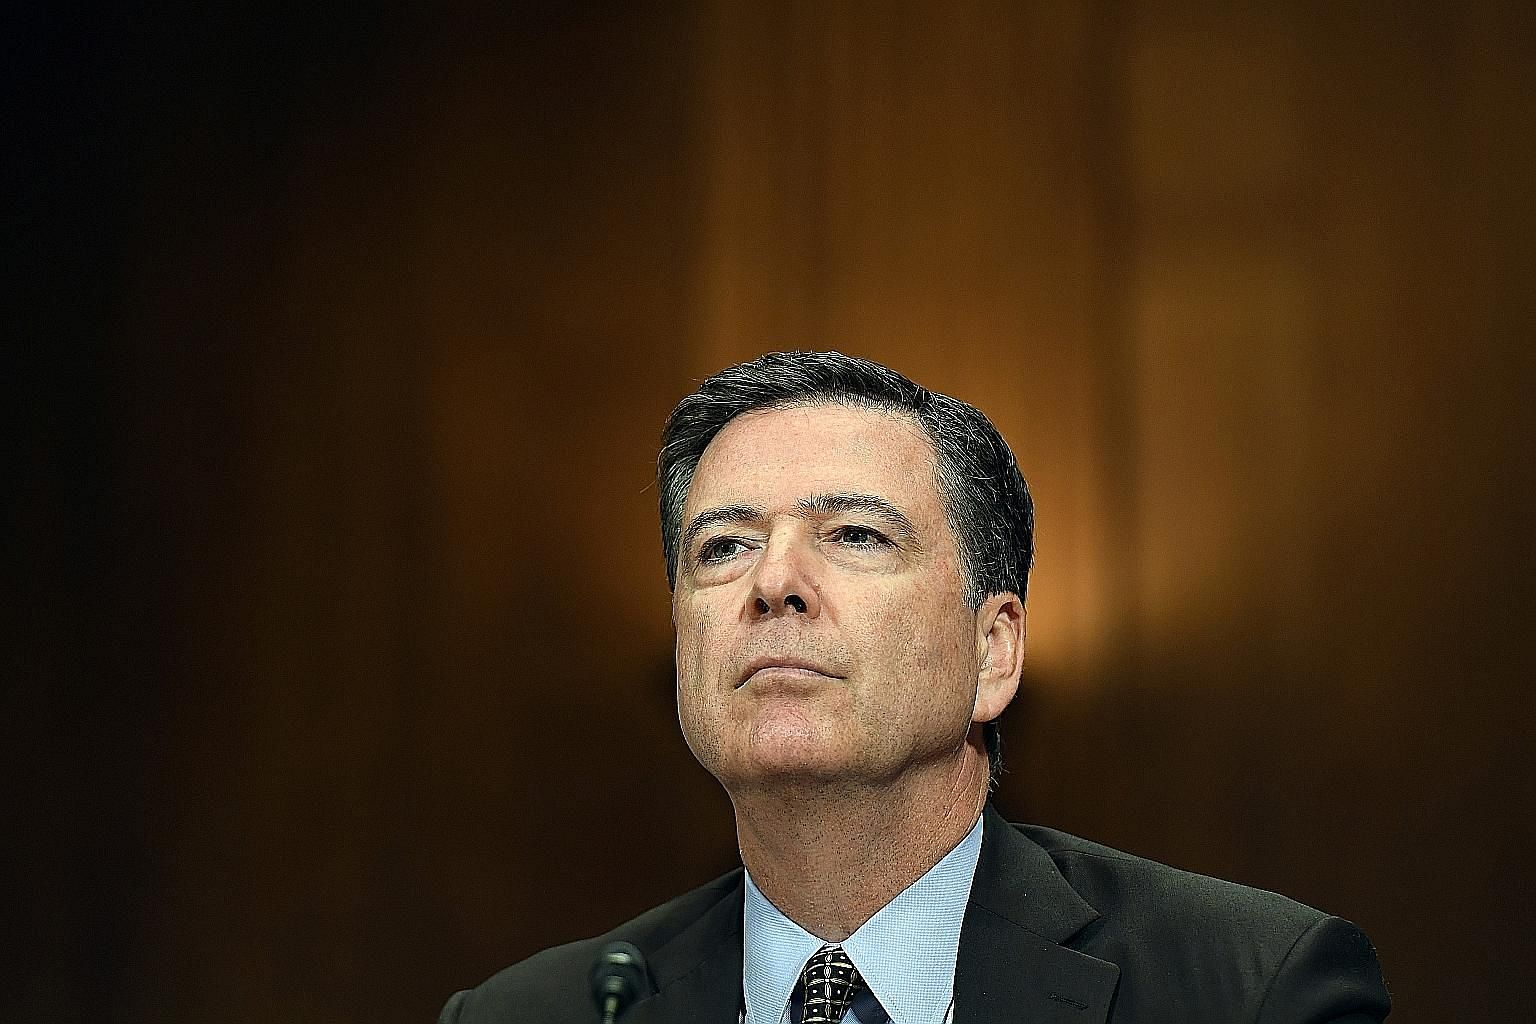 """A US Justice Department report has found that then-FBI director James Comey was """"insubordinate"""" in how he handled an e-mail probe."""